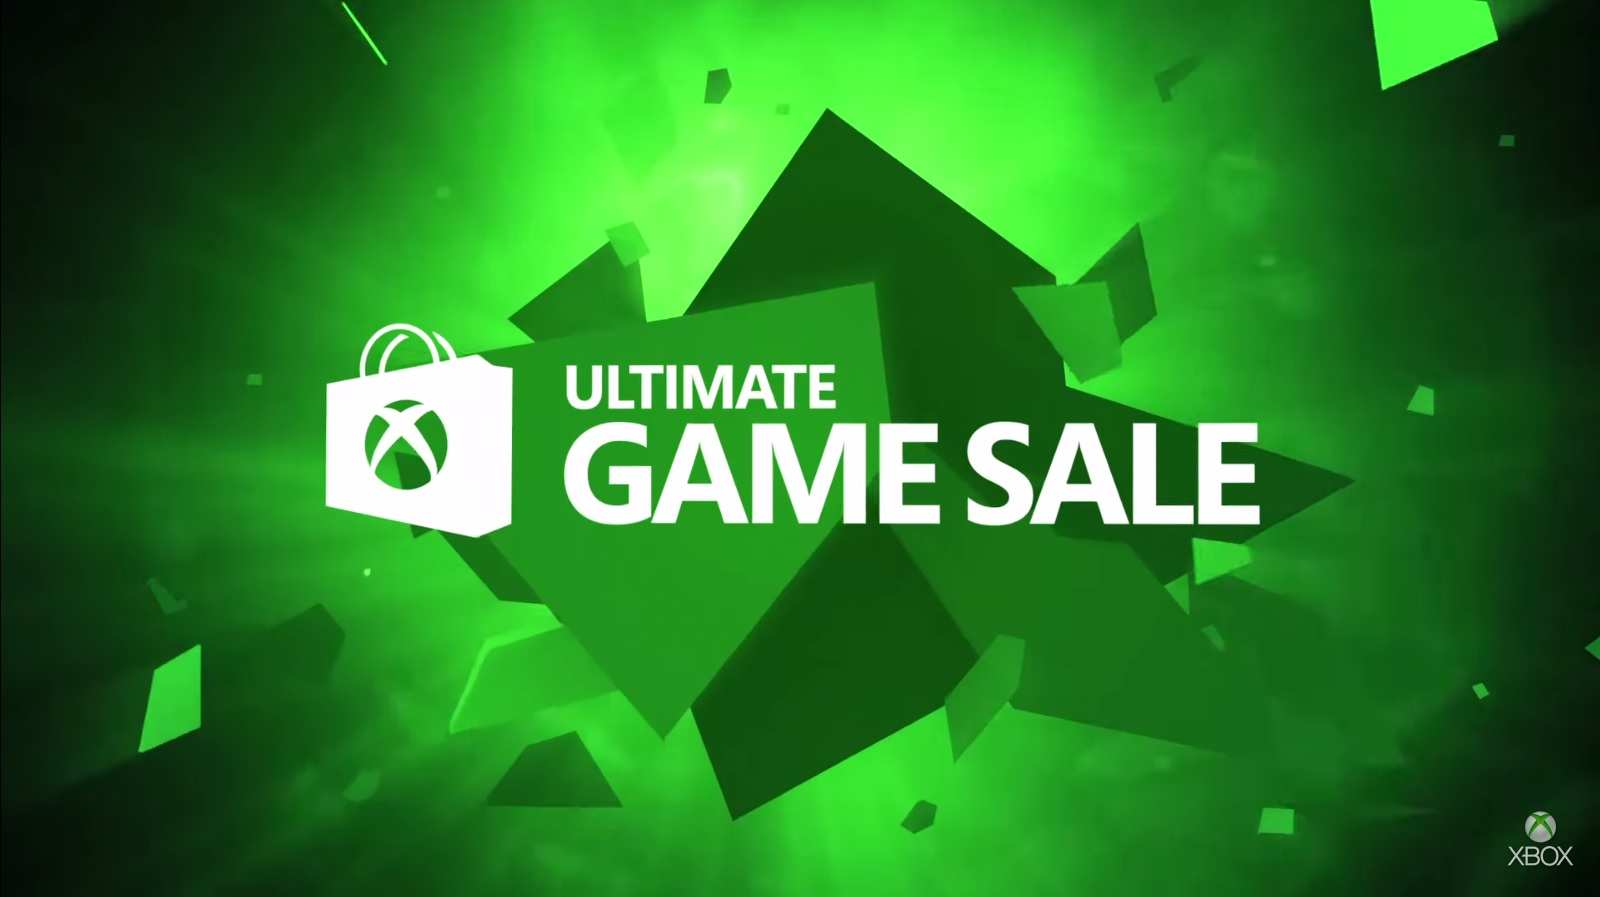 Xbox One Games On Sale : Xbox ultimate game sale video cramgaming